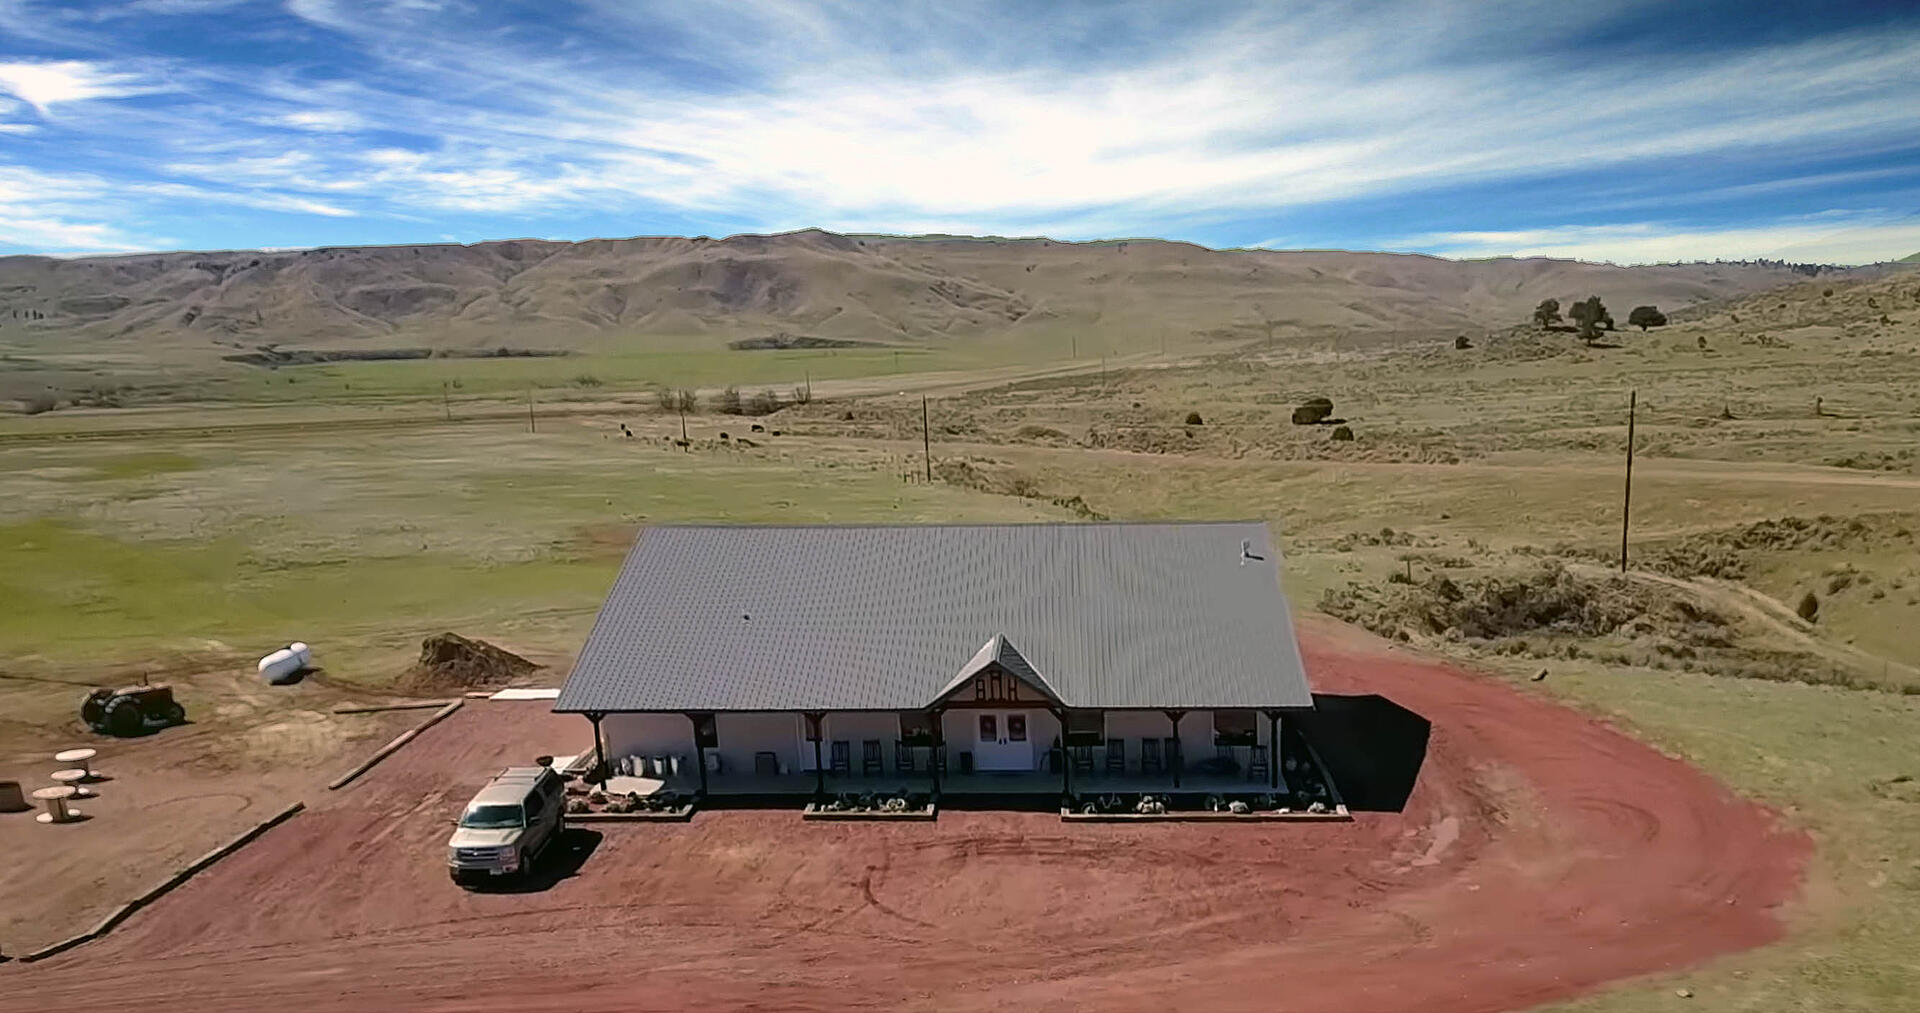 Drone Shot of Outdoor Shooting Range Facility